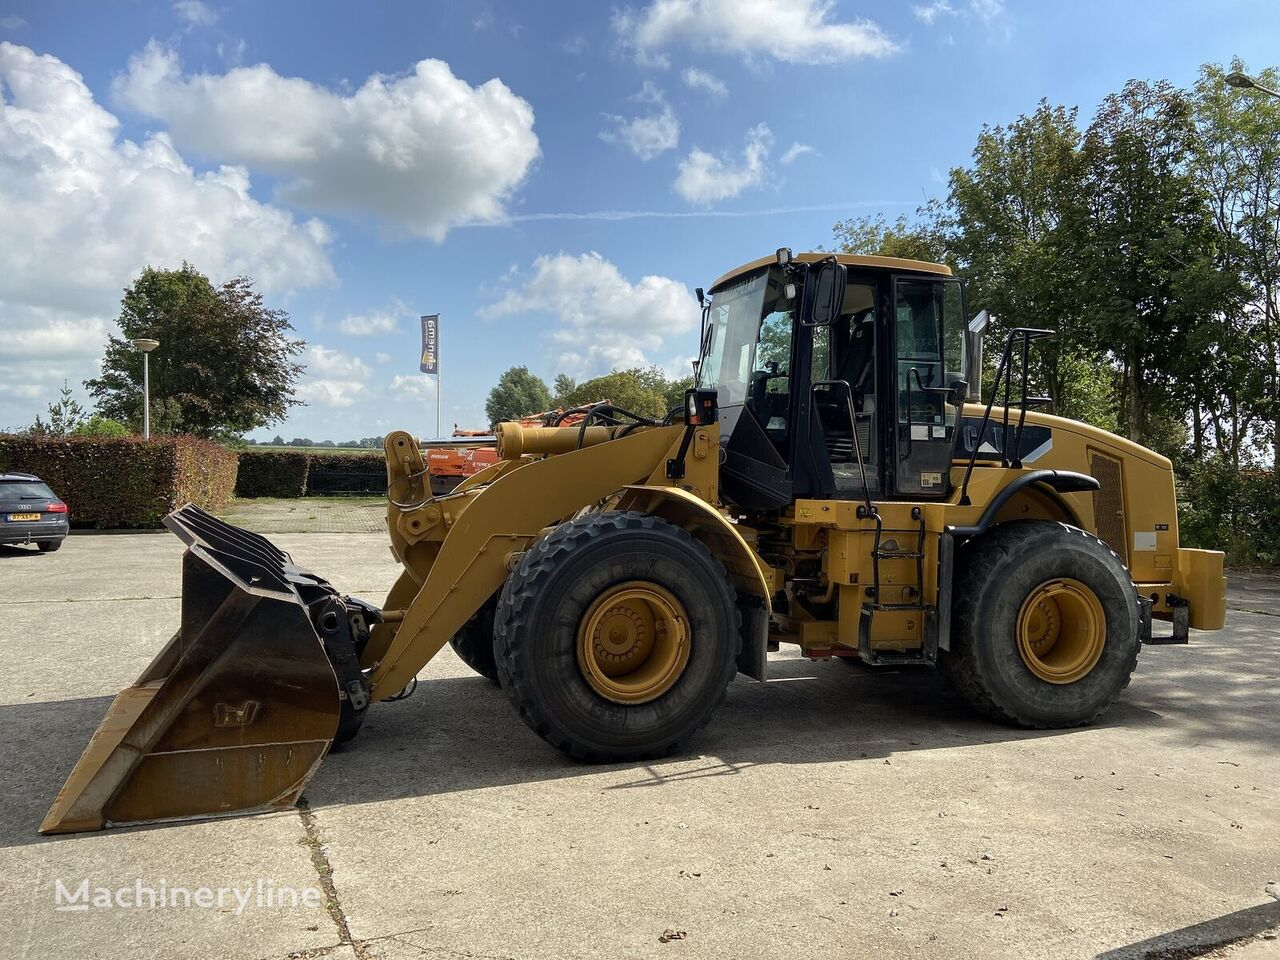 CATERPILLAR 962H wheel loader